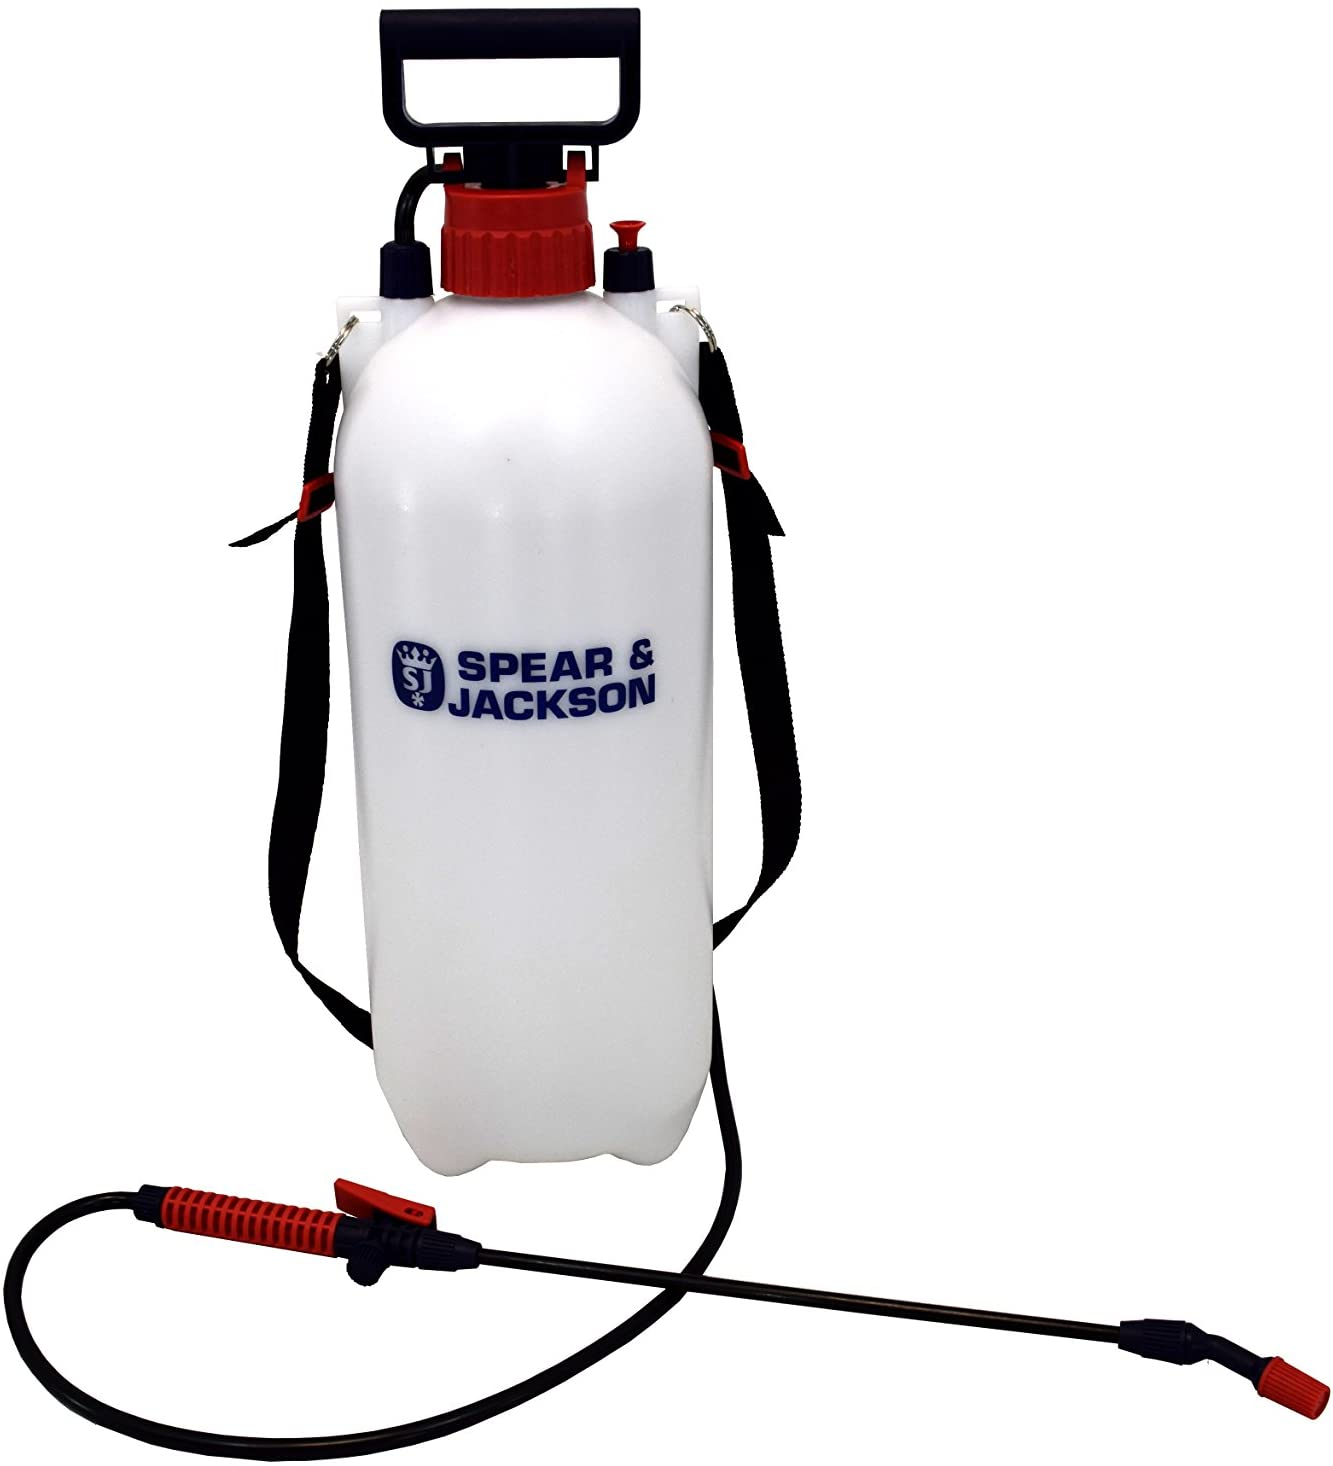 Spear and Jackson 8 Litre Pump Action Pressure Sprayer